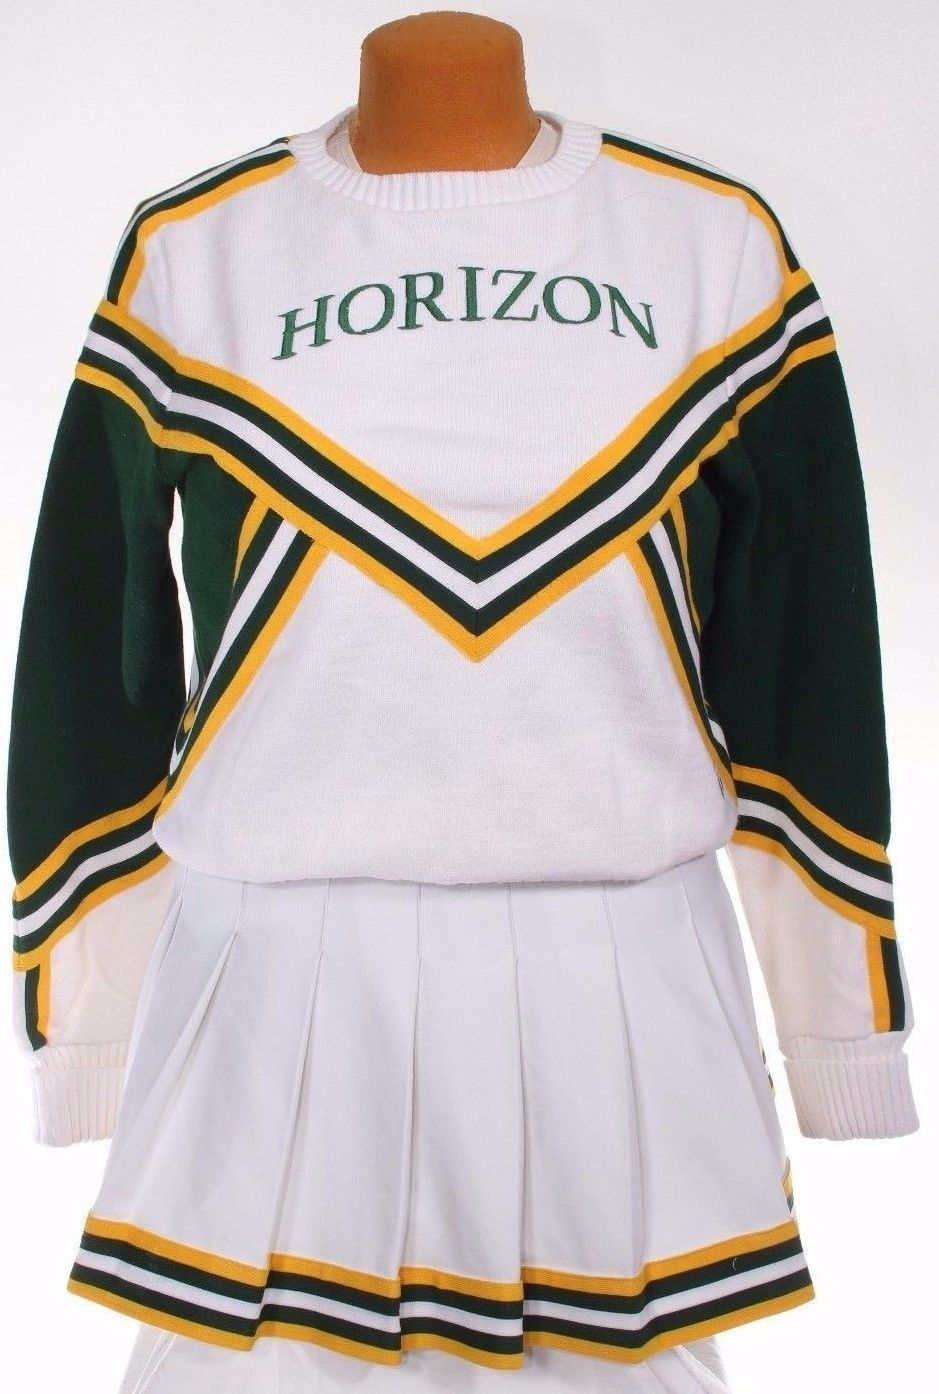 Cheerleader Cheerleading Uniform Outfit Sweater Skirt Green White Gold Vintage | eBay #cheerleaderuniform Cheerleader Cheerleading Uniform Outfit Sweater Skirt Green White Gold Vintage | eBay #cheerleaderuniform Cheerleader Cheerleading Uniform Outfit Sweater Skirt Green White Gold Vintage | eBay #cheerleaderuniform Cheerleader Cheerleading Uniform Outfit Sweater Skirt Green White Gold Vintage | eBay #cheerleaderuniform